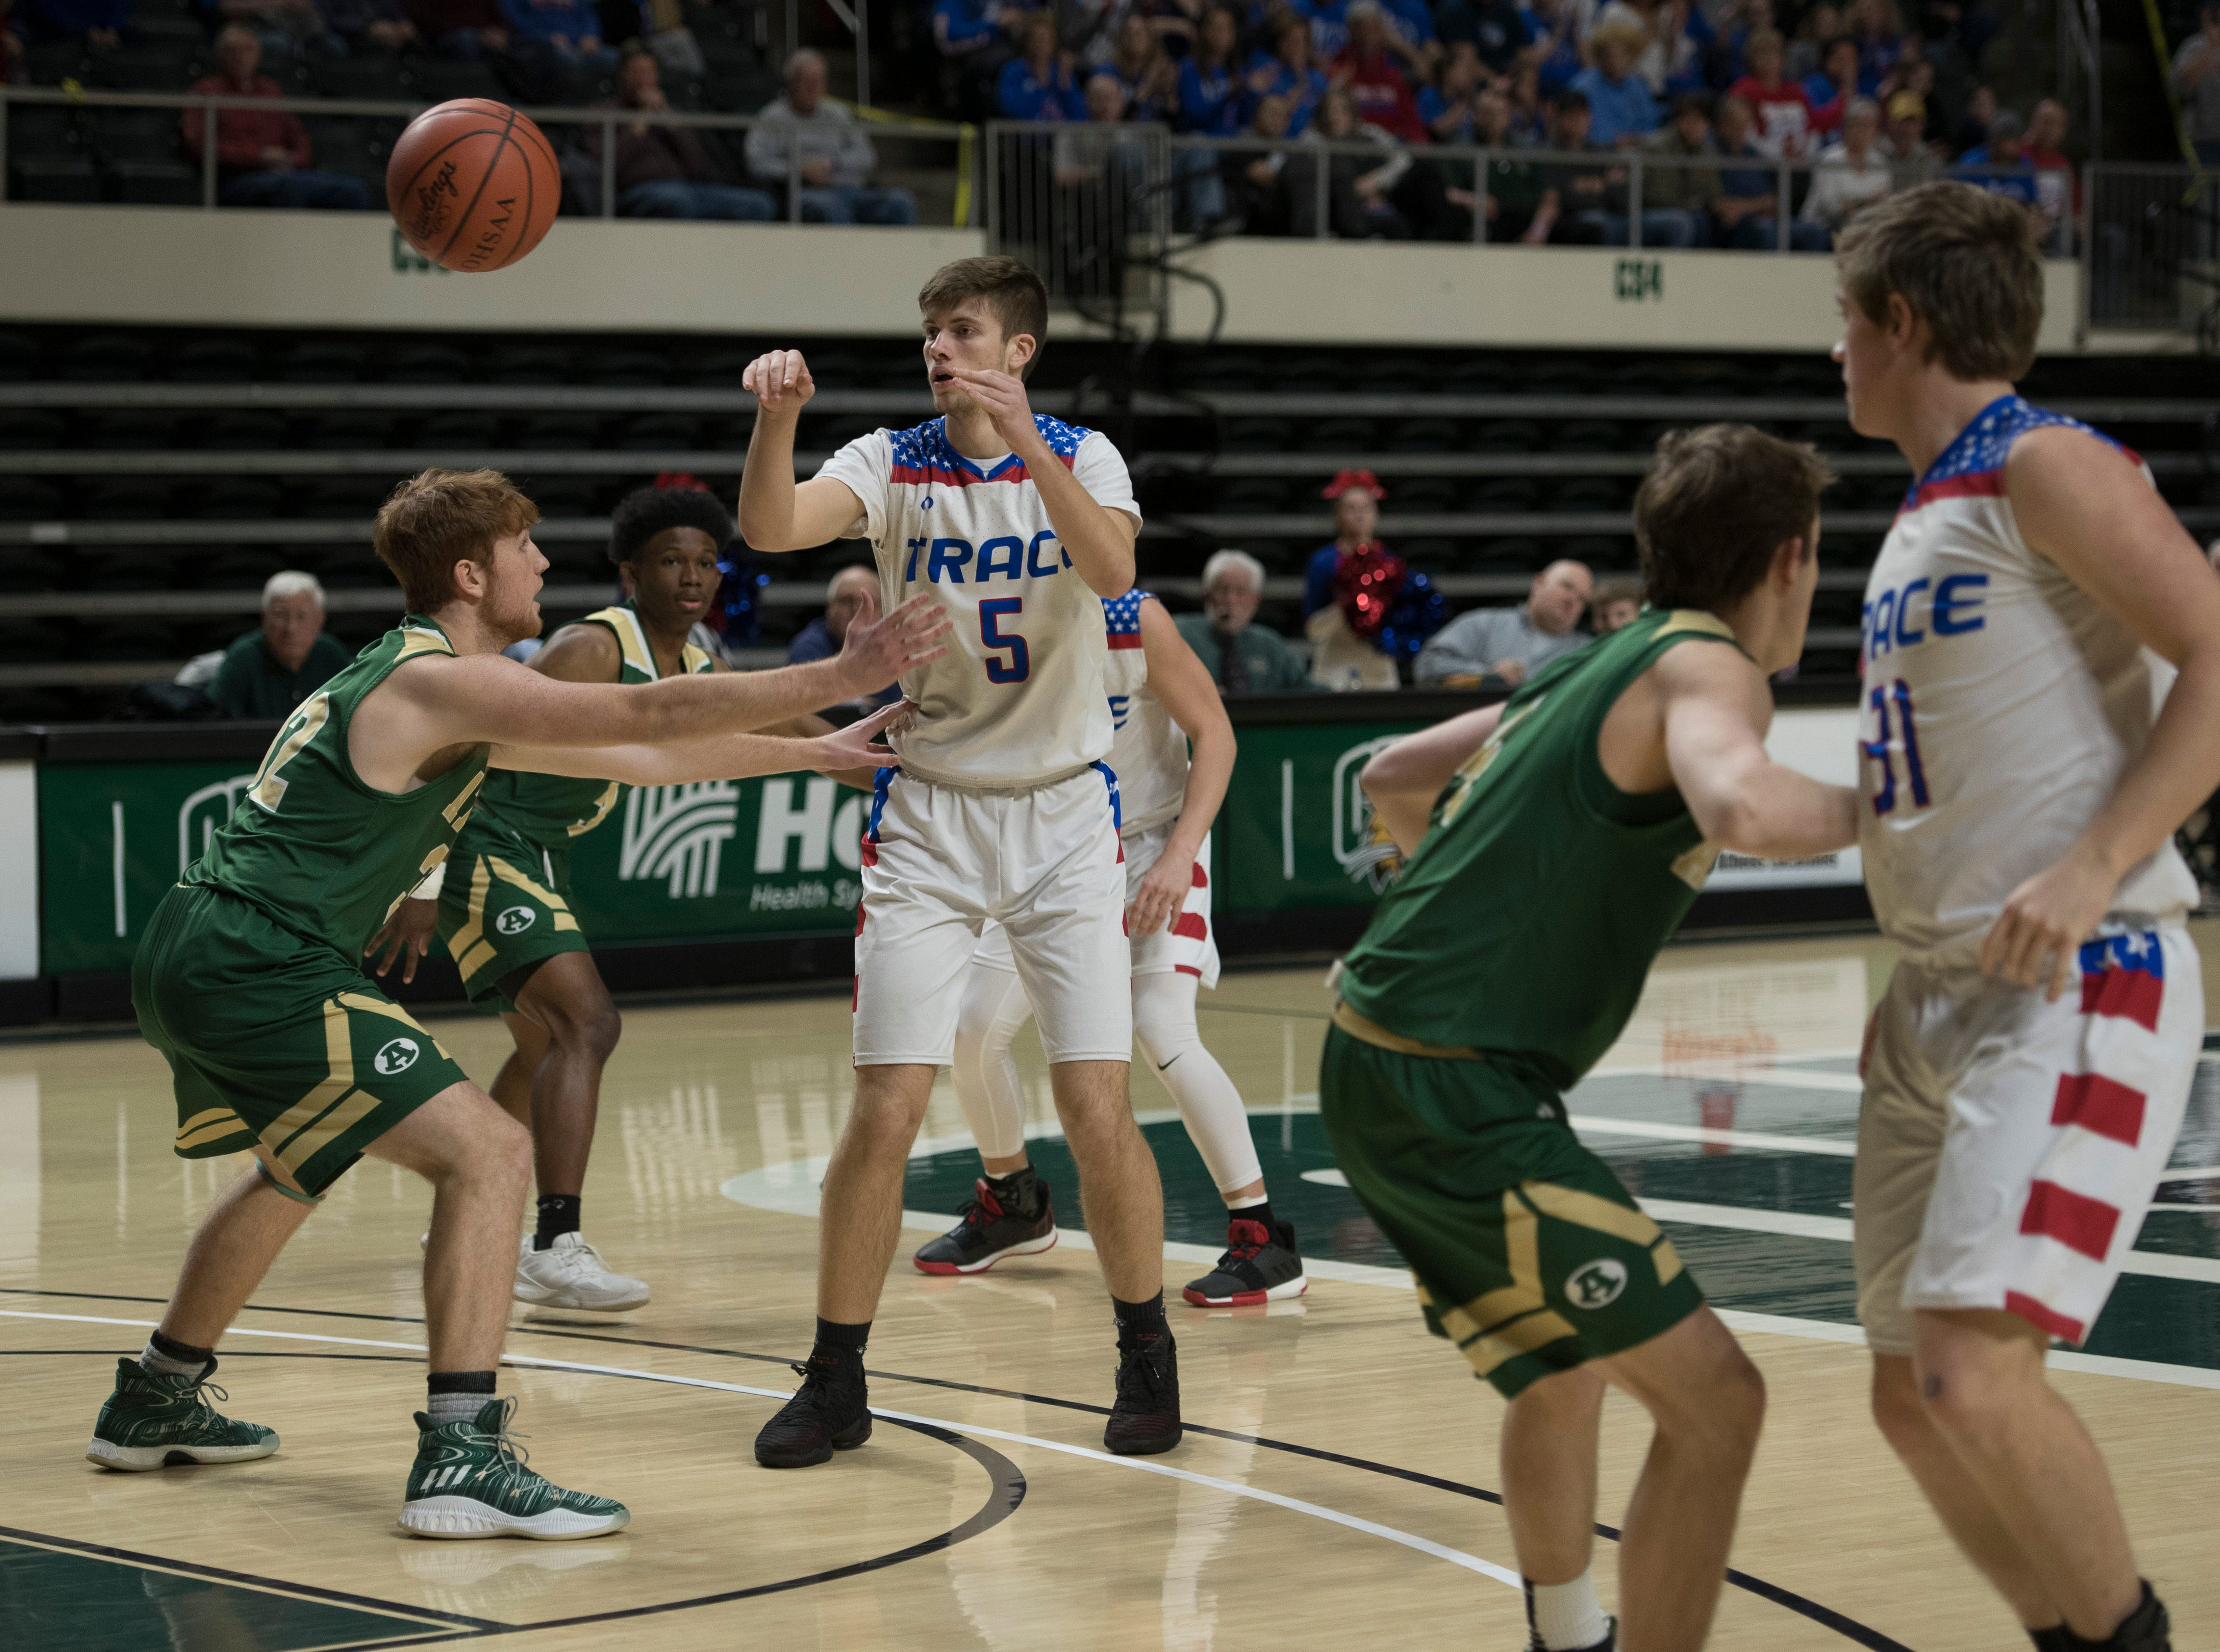 The Zane Trace Pioneers defeated the Athens Bulldogs 48-28 Thursday night in a Division II district semifinal game at Ohio University's Convocation Center in Athens, Ohio, on Feb. 28, 2019. Zane Trace will return for a Division II district final against Fairfield Union 50-39 in Athens on March 10, 2019.